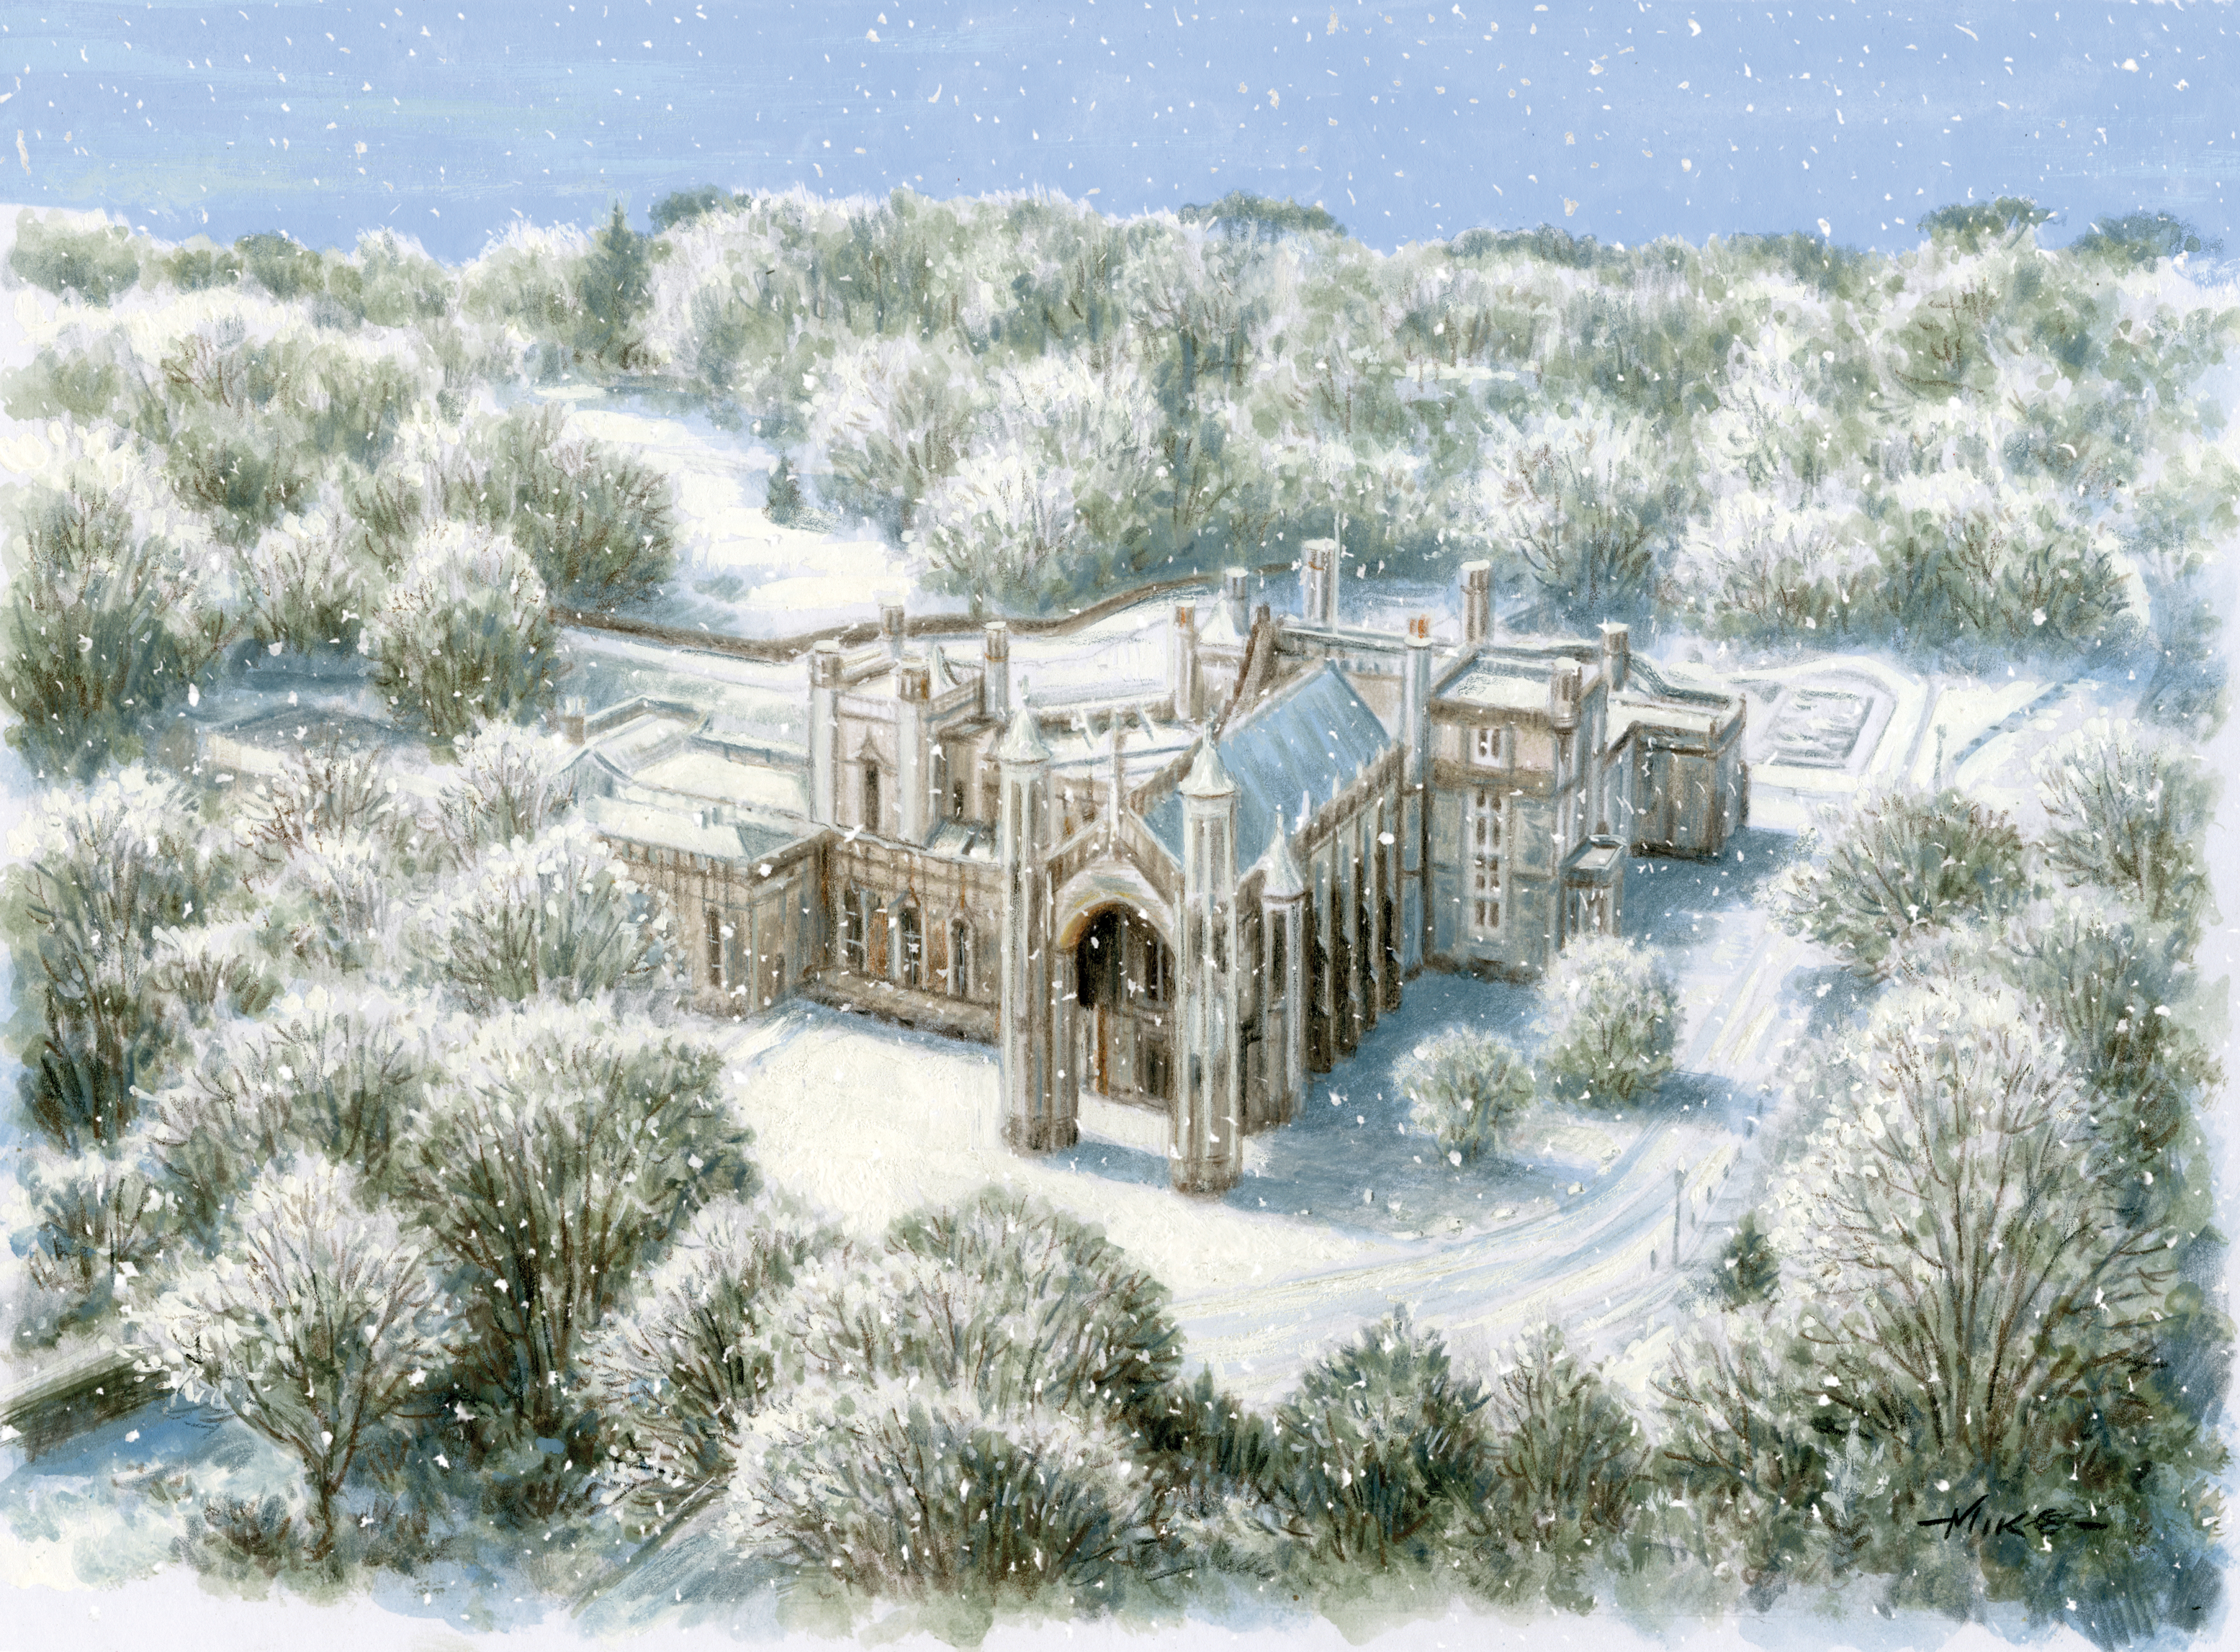 A artistic impression of Highcliffe Castle in the snow, as seen from an aerial view.